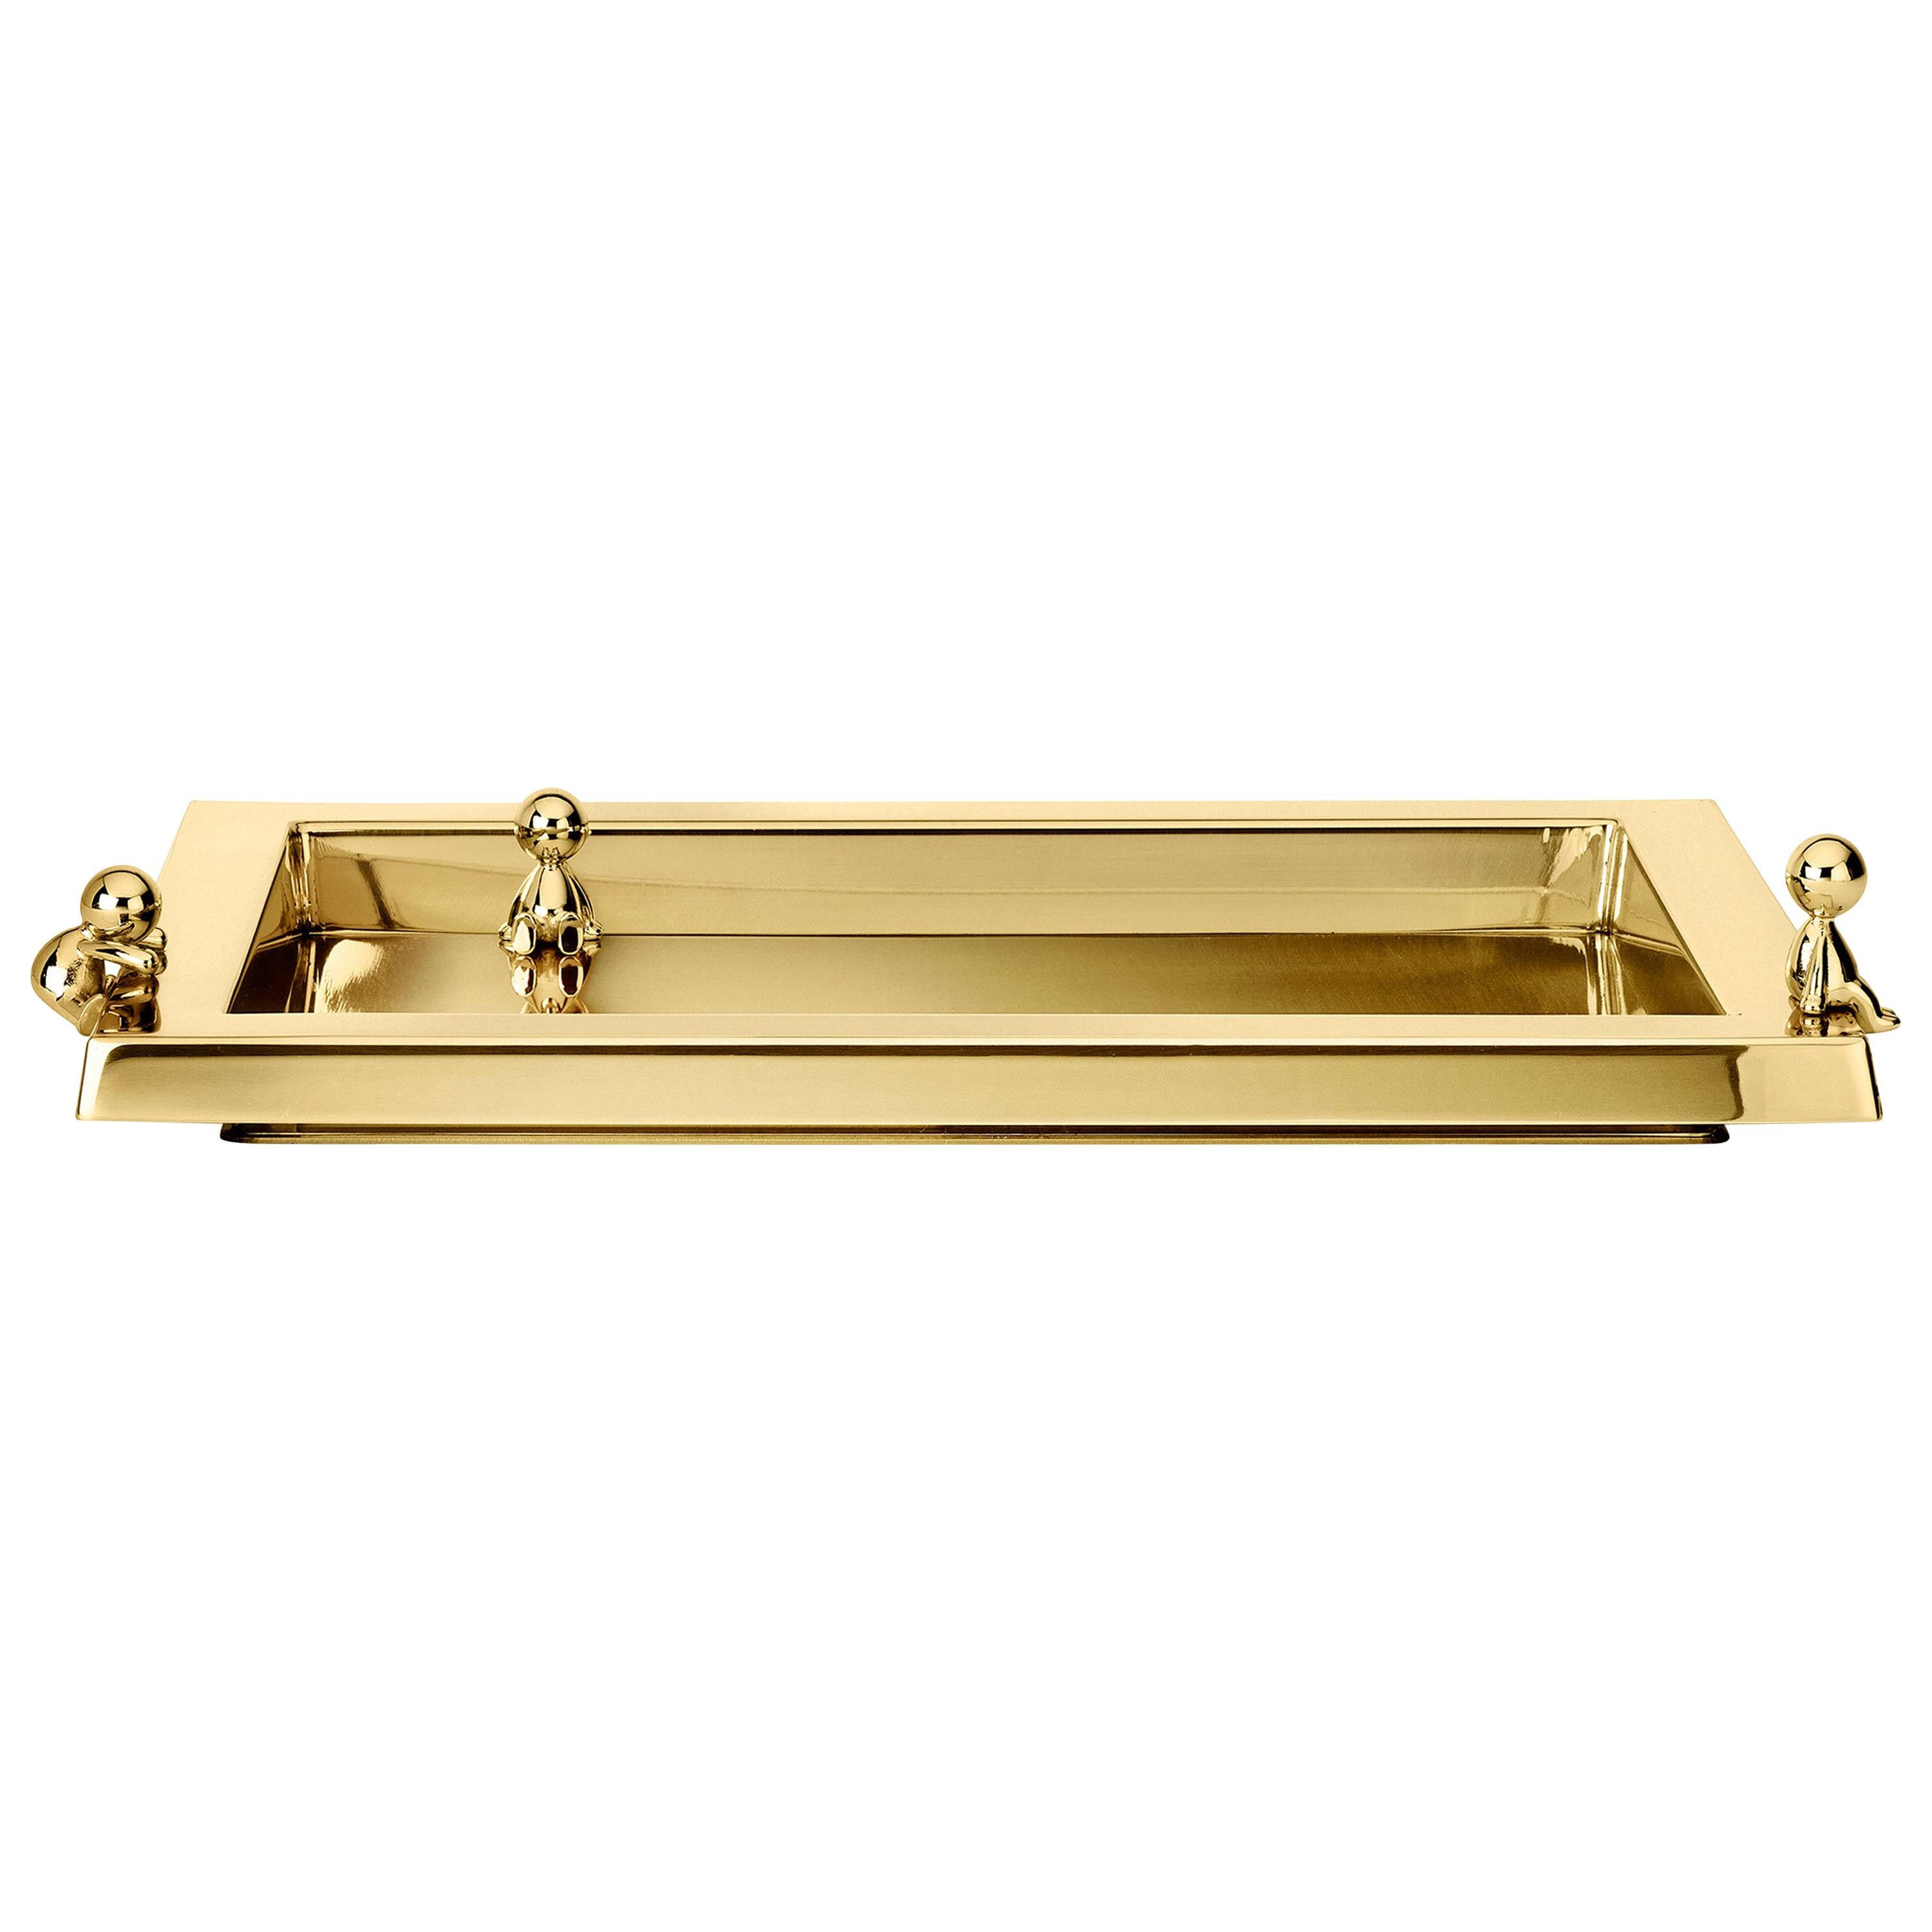 Ghidini 1961 Omini Serving Tray in Gold by Stefano Giovannoni